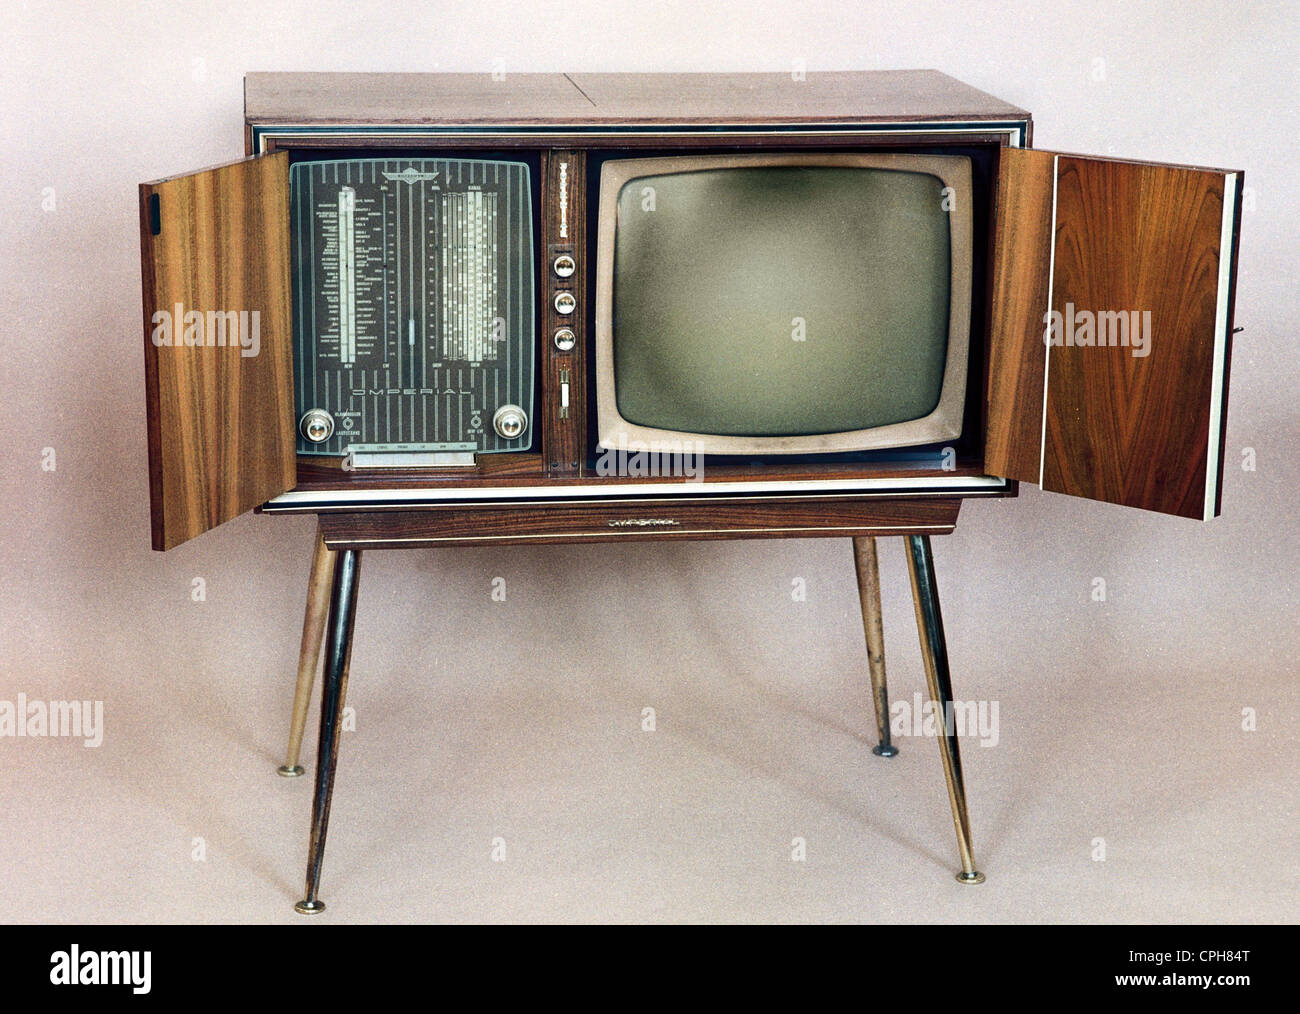 Broadcast, Television, Television Cabinet Imperial Manuela 1223, Tv Set  Combinated Cabinet With Built In Radio And Record Player